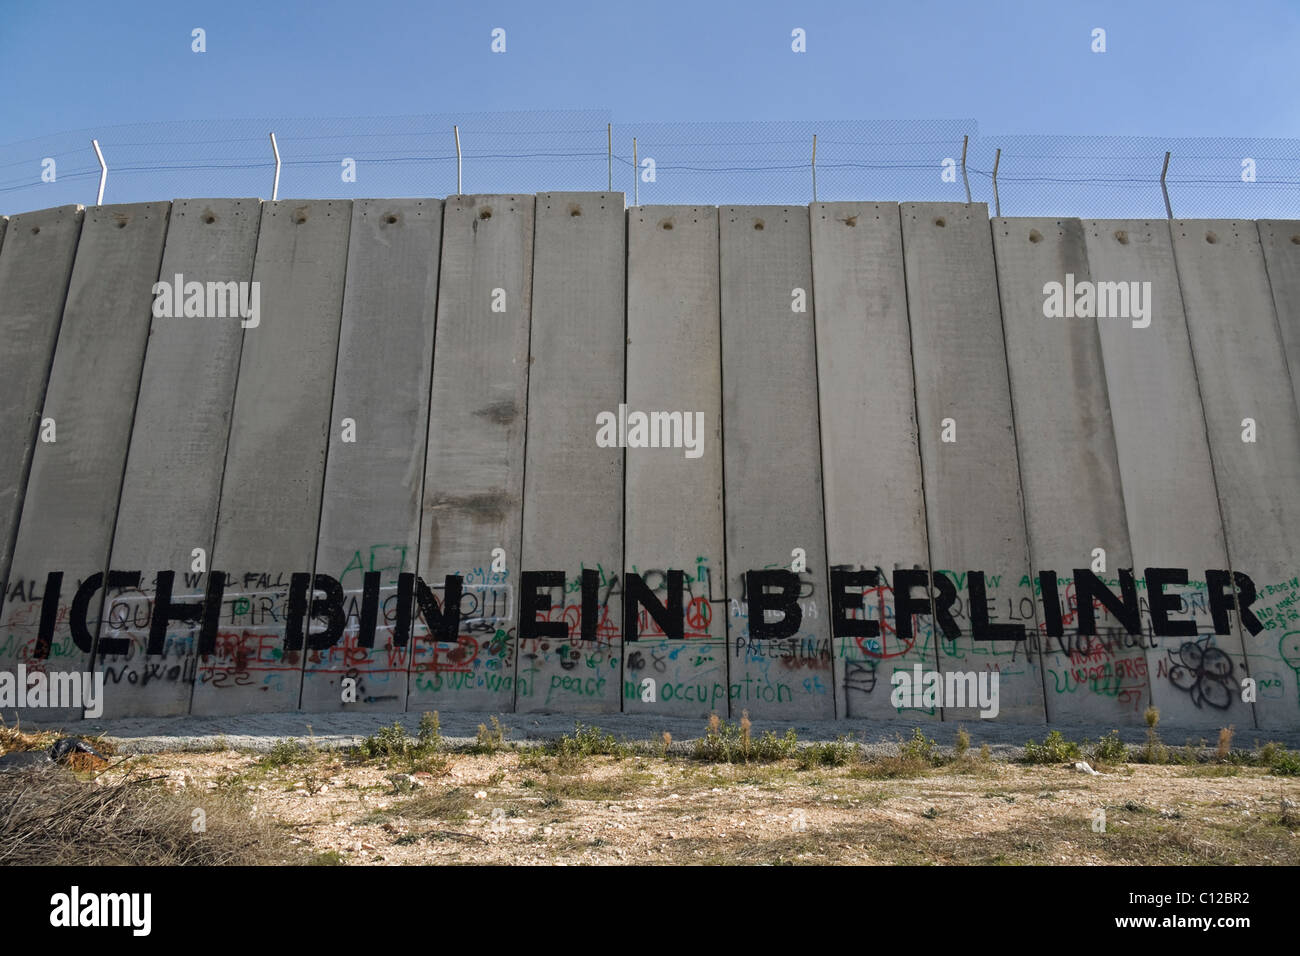 Un graffiti sur le mur de séparation, la Palestine Photo Stock